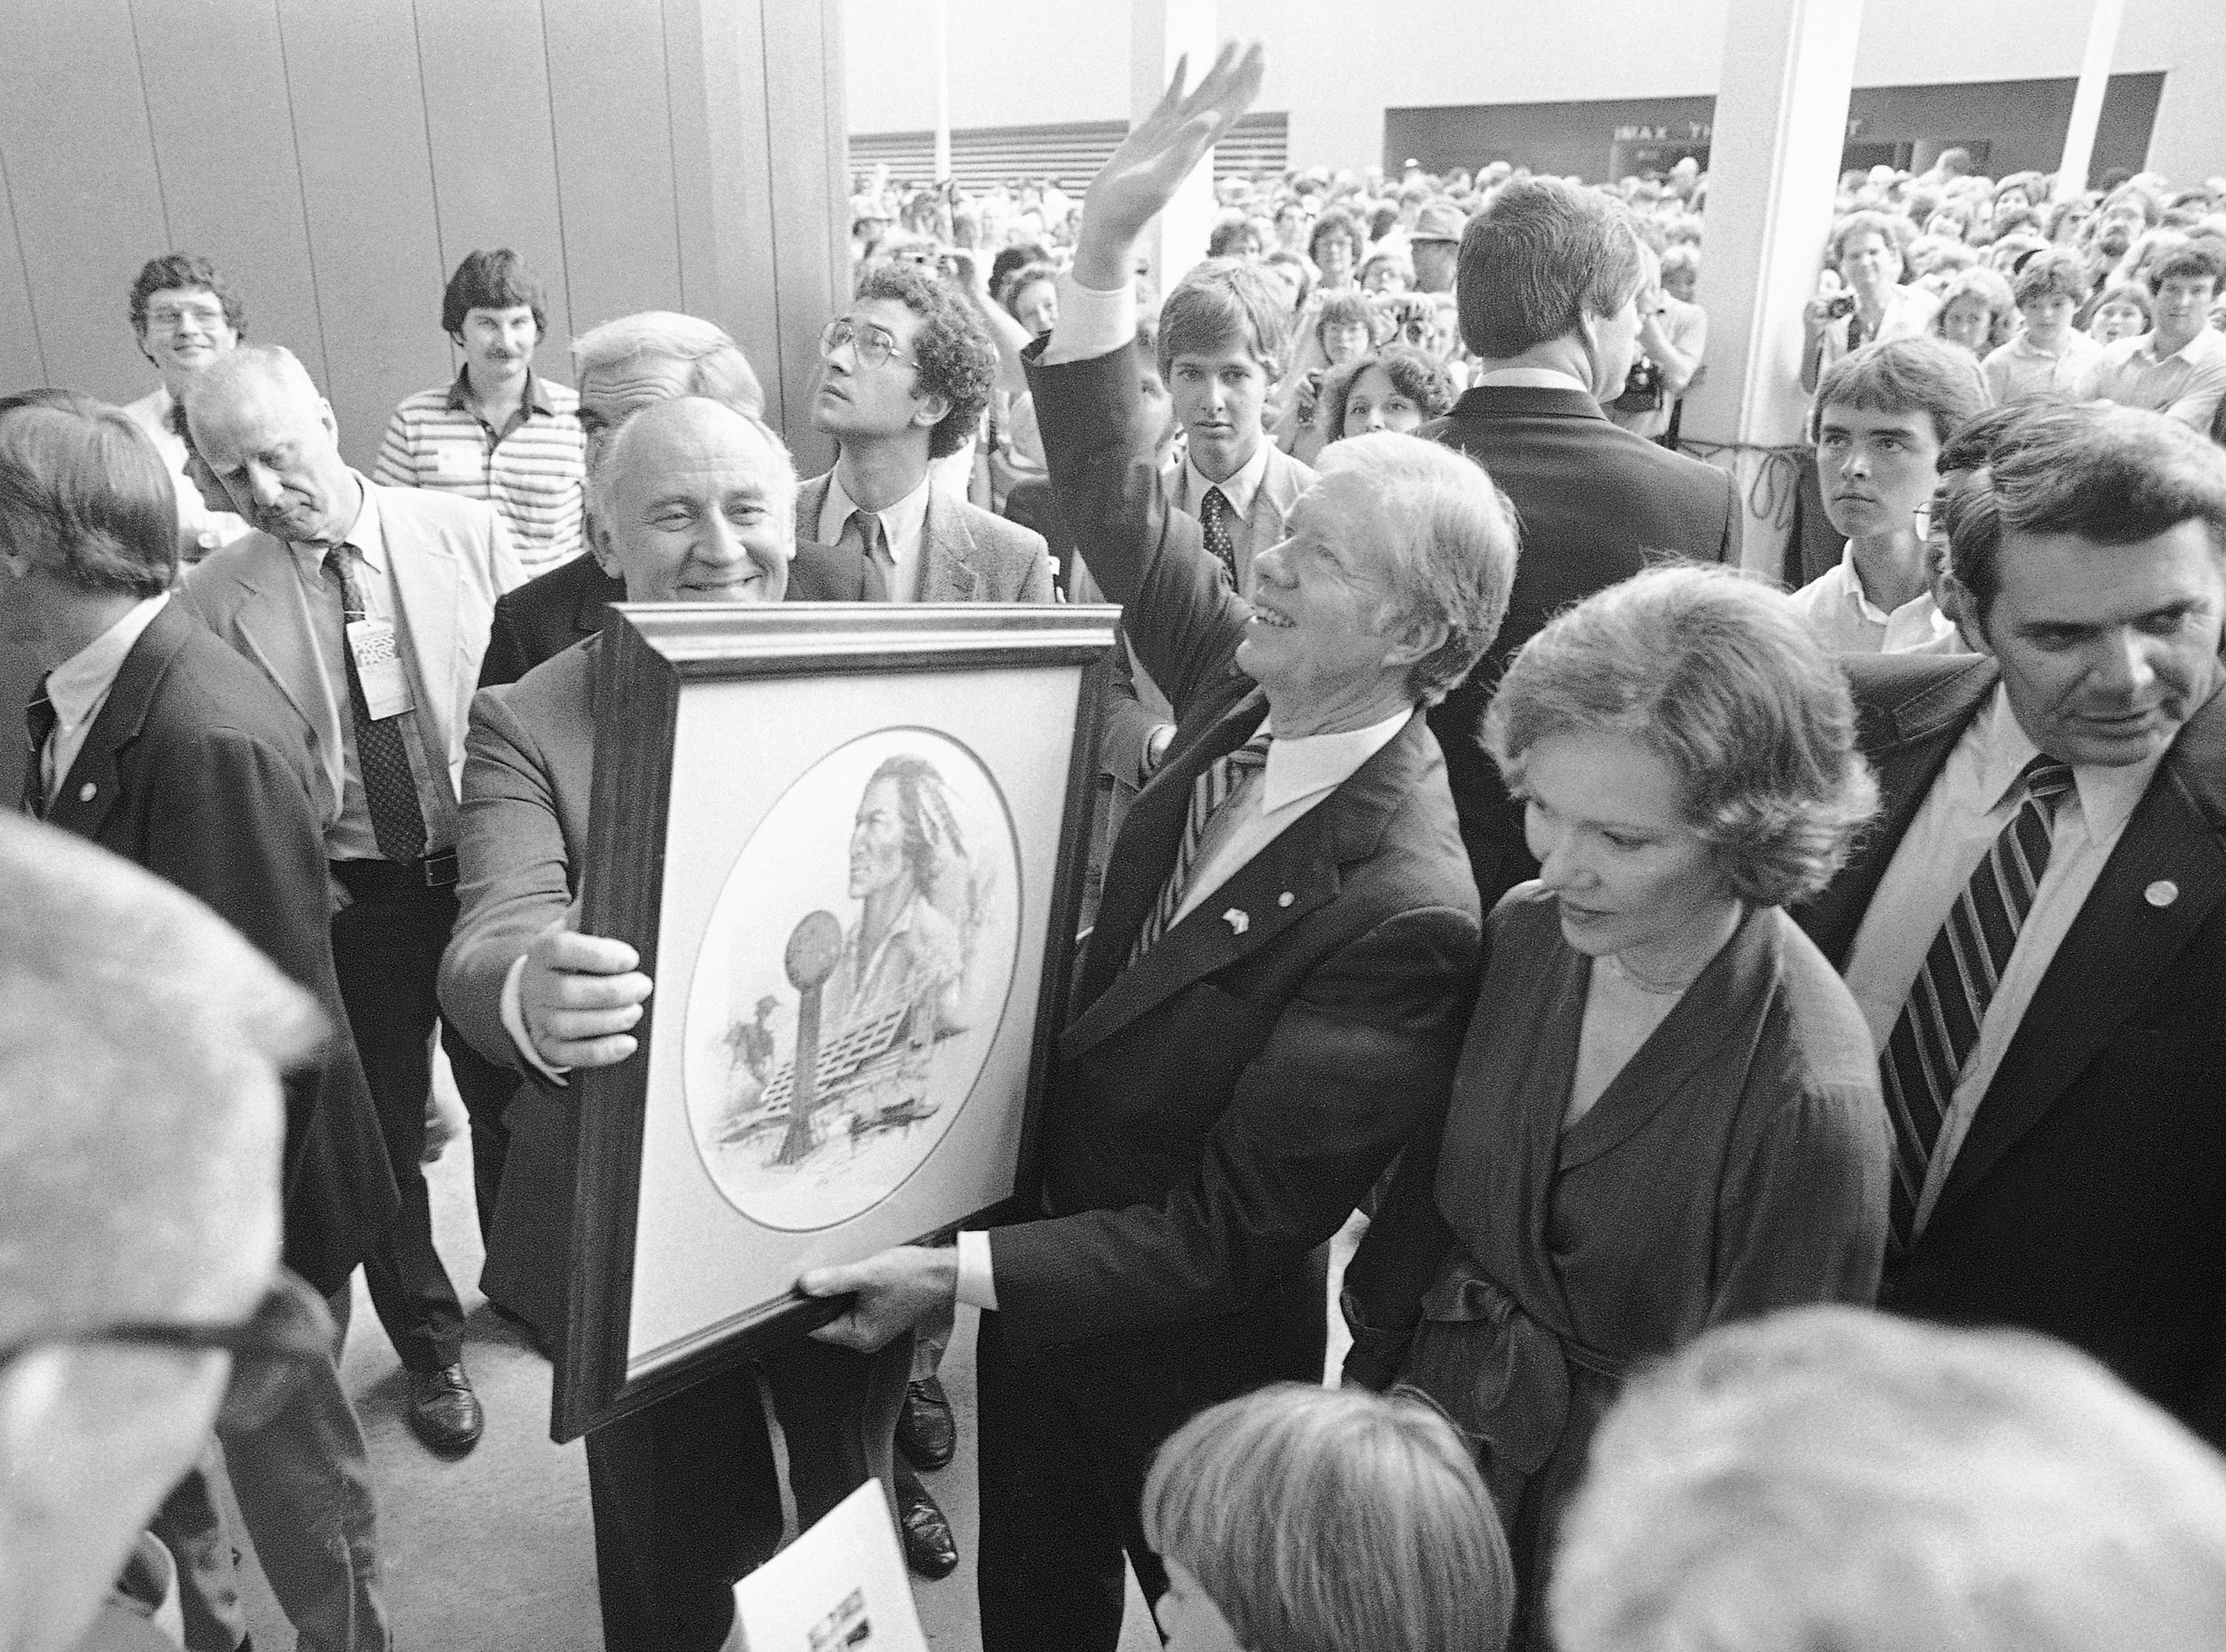 Former President Jimmy Carter, with his wife, Rosalynn, waves to the crowd as he receives a painting as a gift at the World's Fair on Oct. 11, 1982.